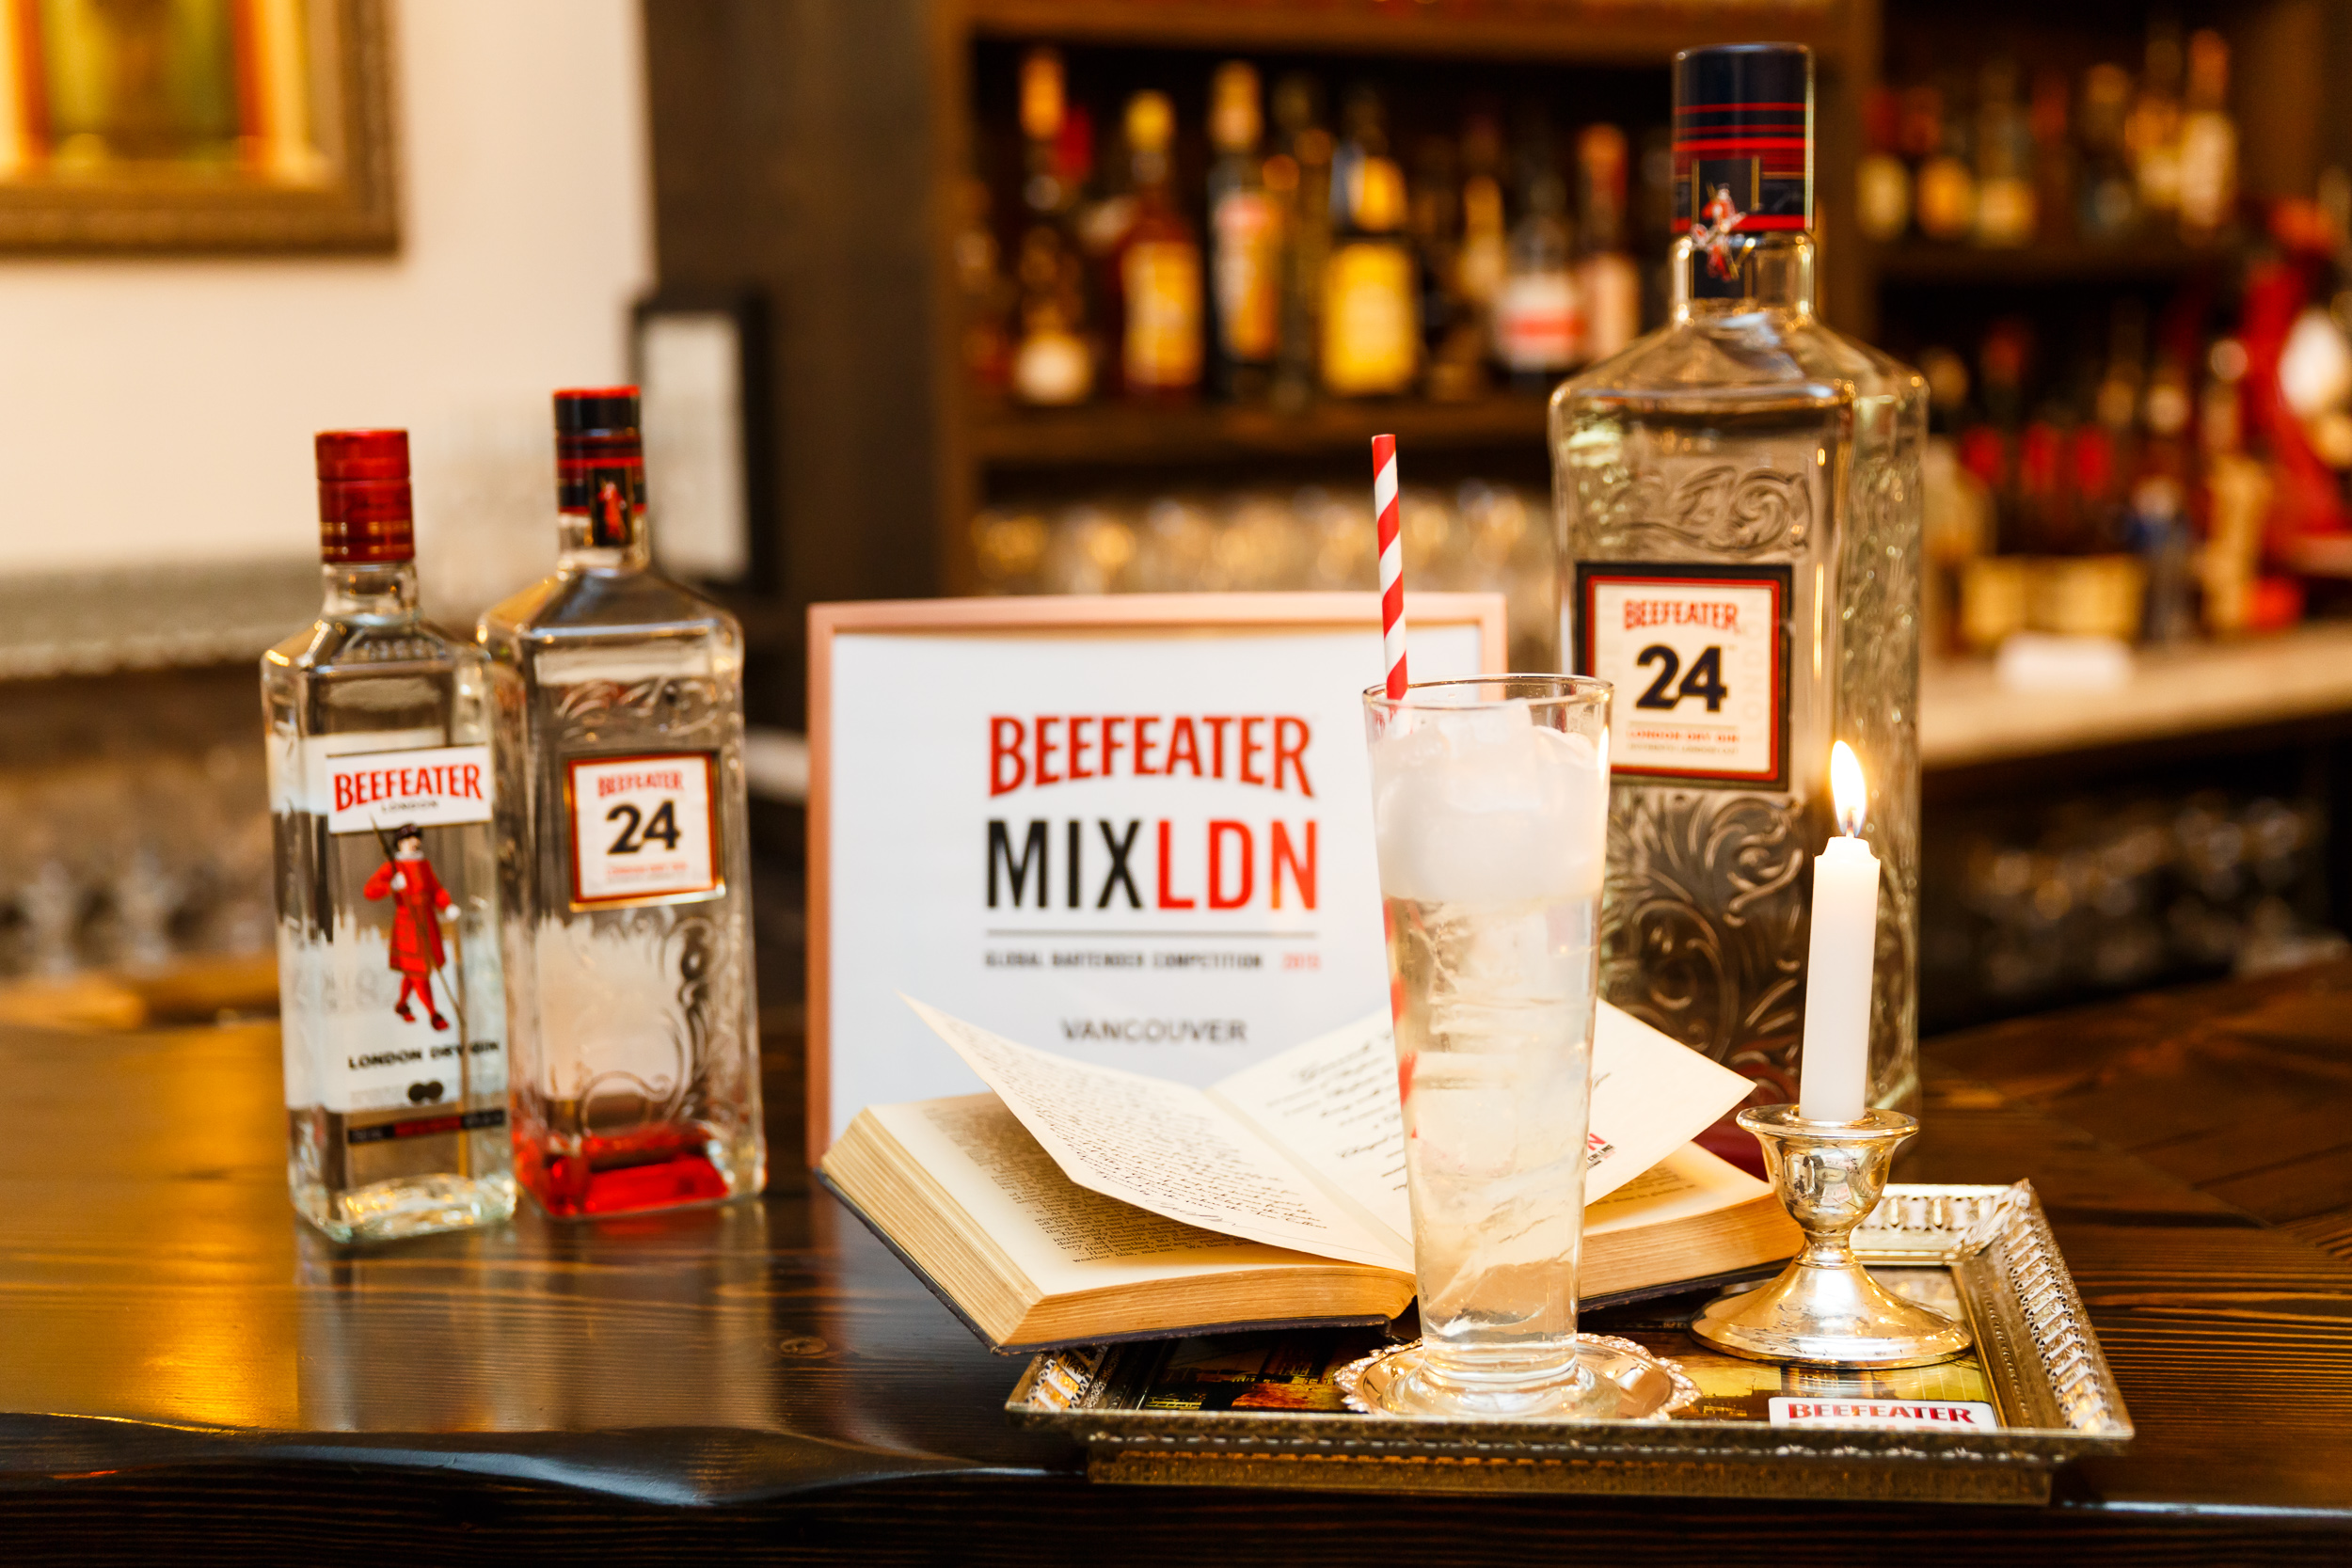 Beefeater-MIXLDN-photo-8.jpg